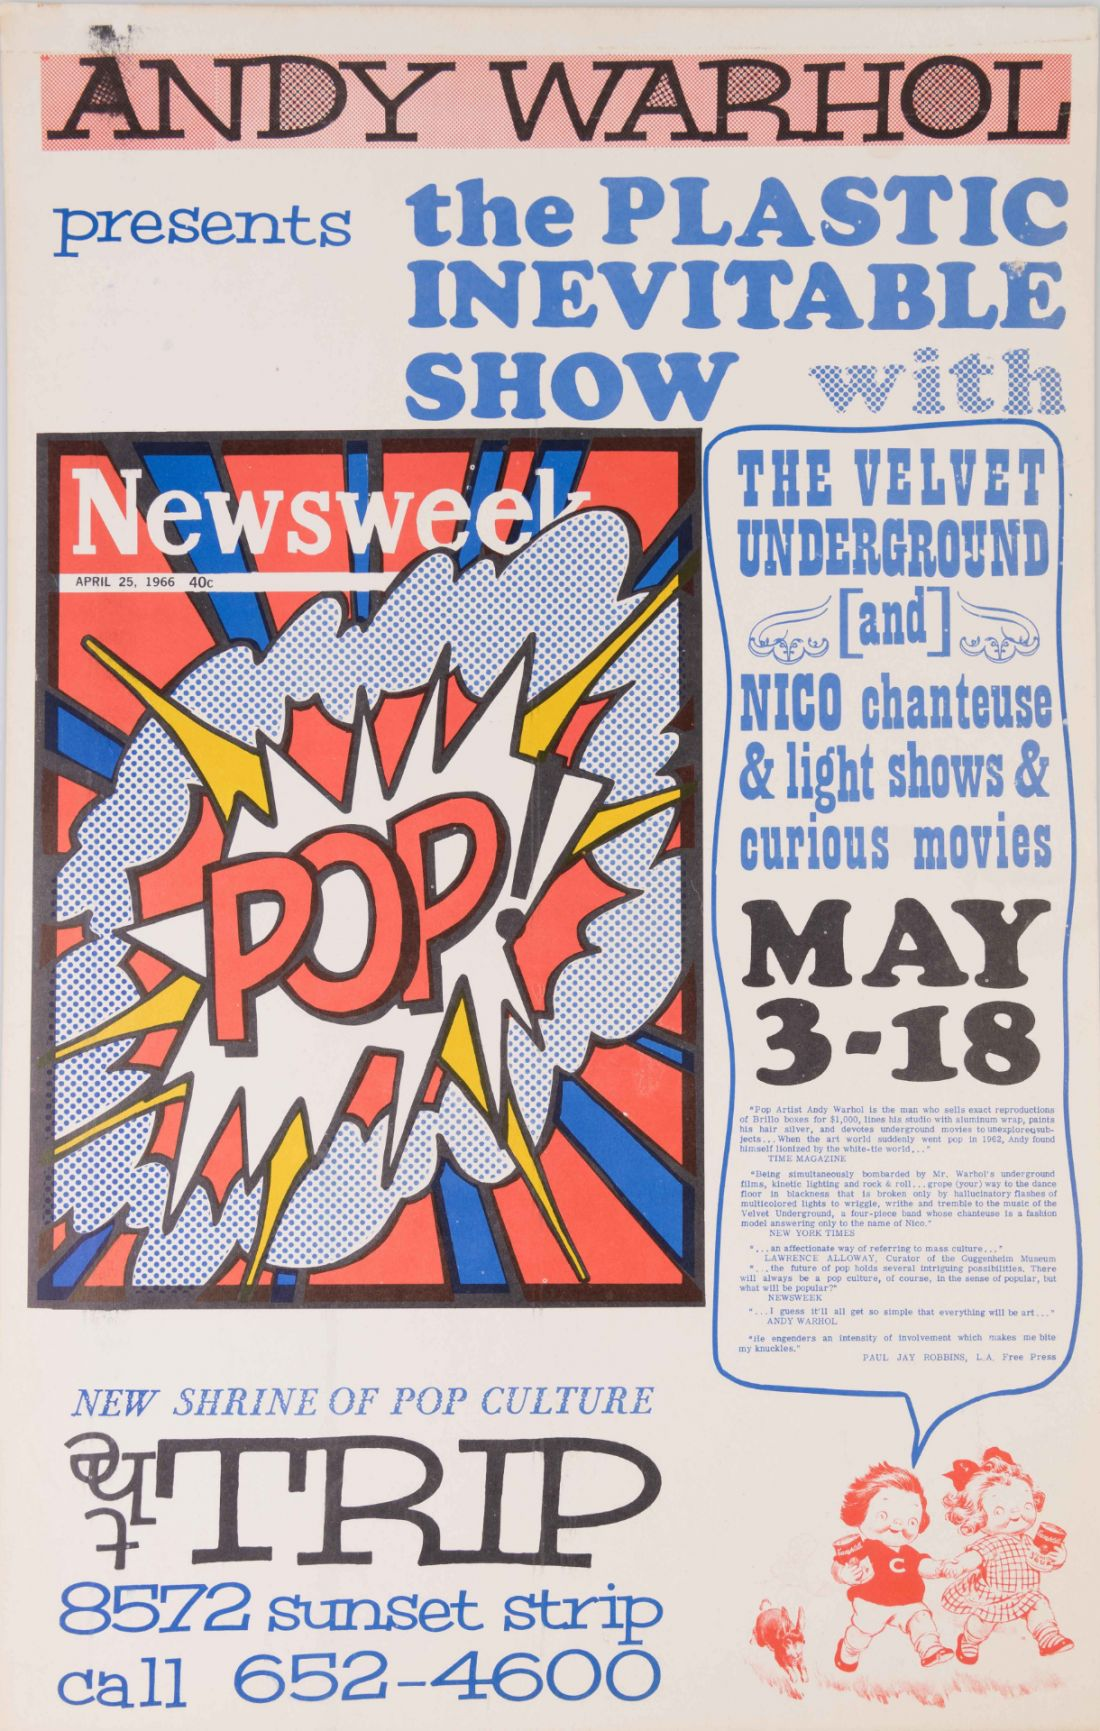 The Trip featuring Andy Warhol's Exploding Plastic Inevitable; an early show by the Velvet Underground (1966). Not for sale.